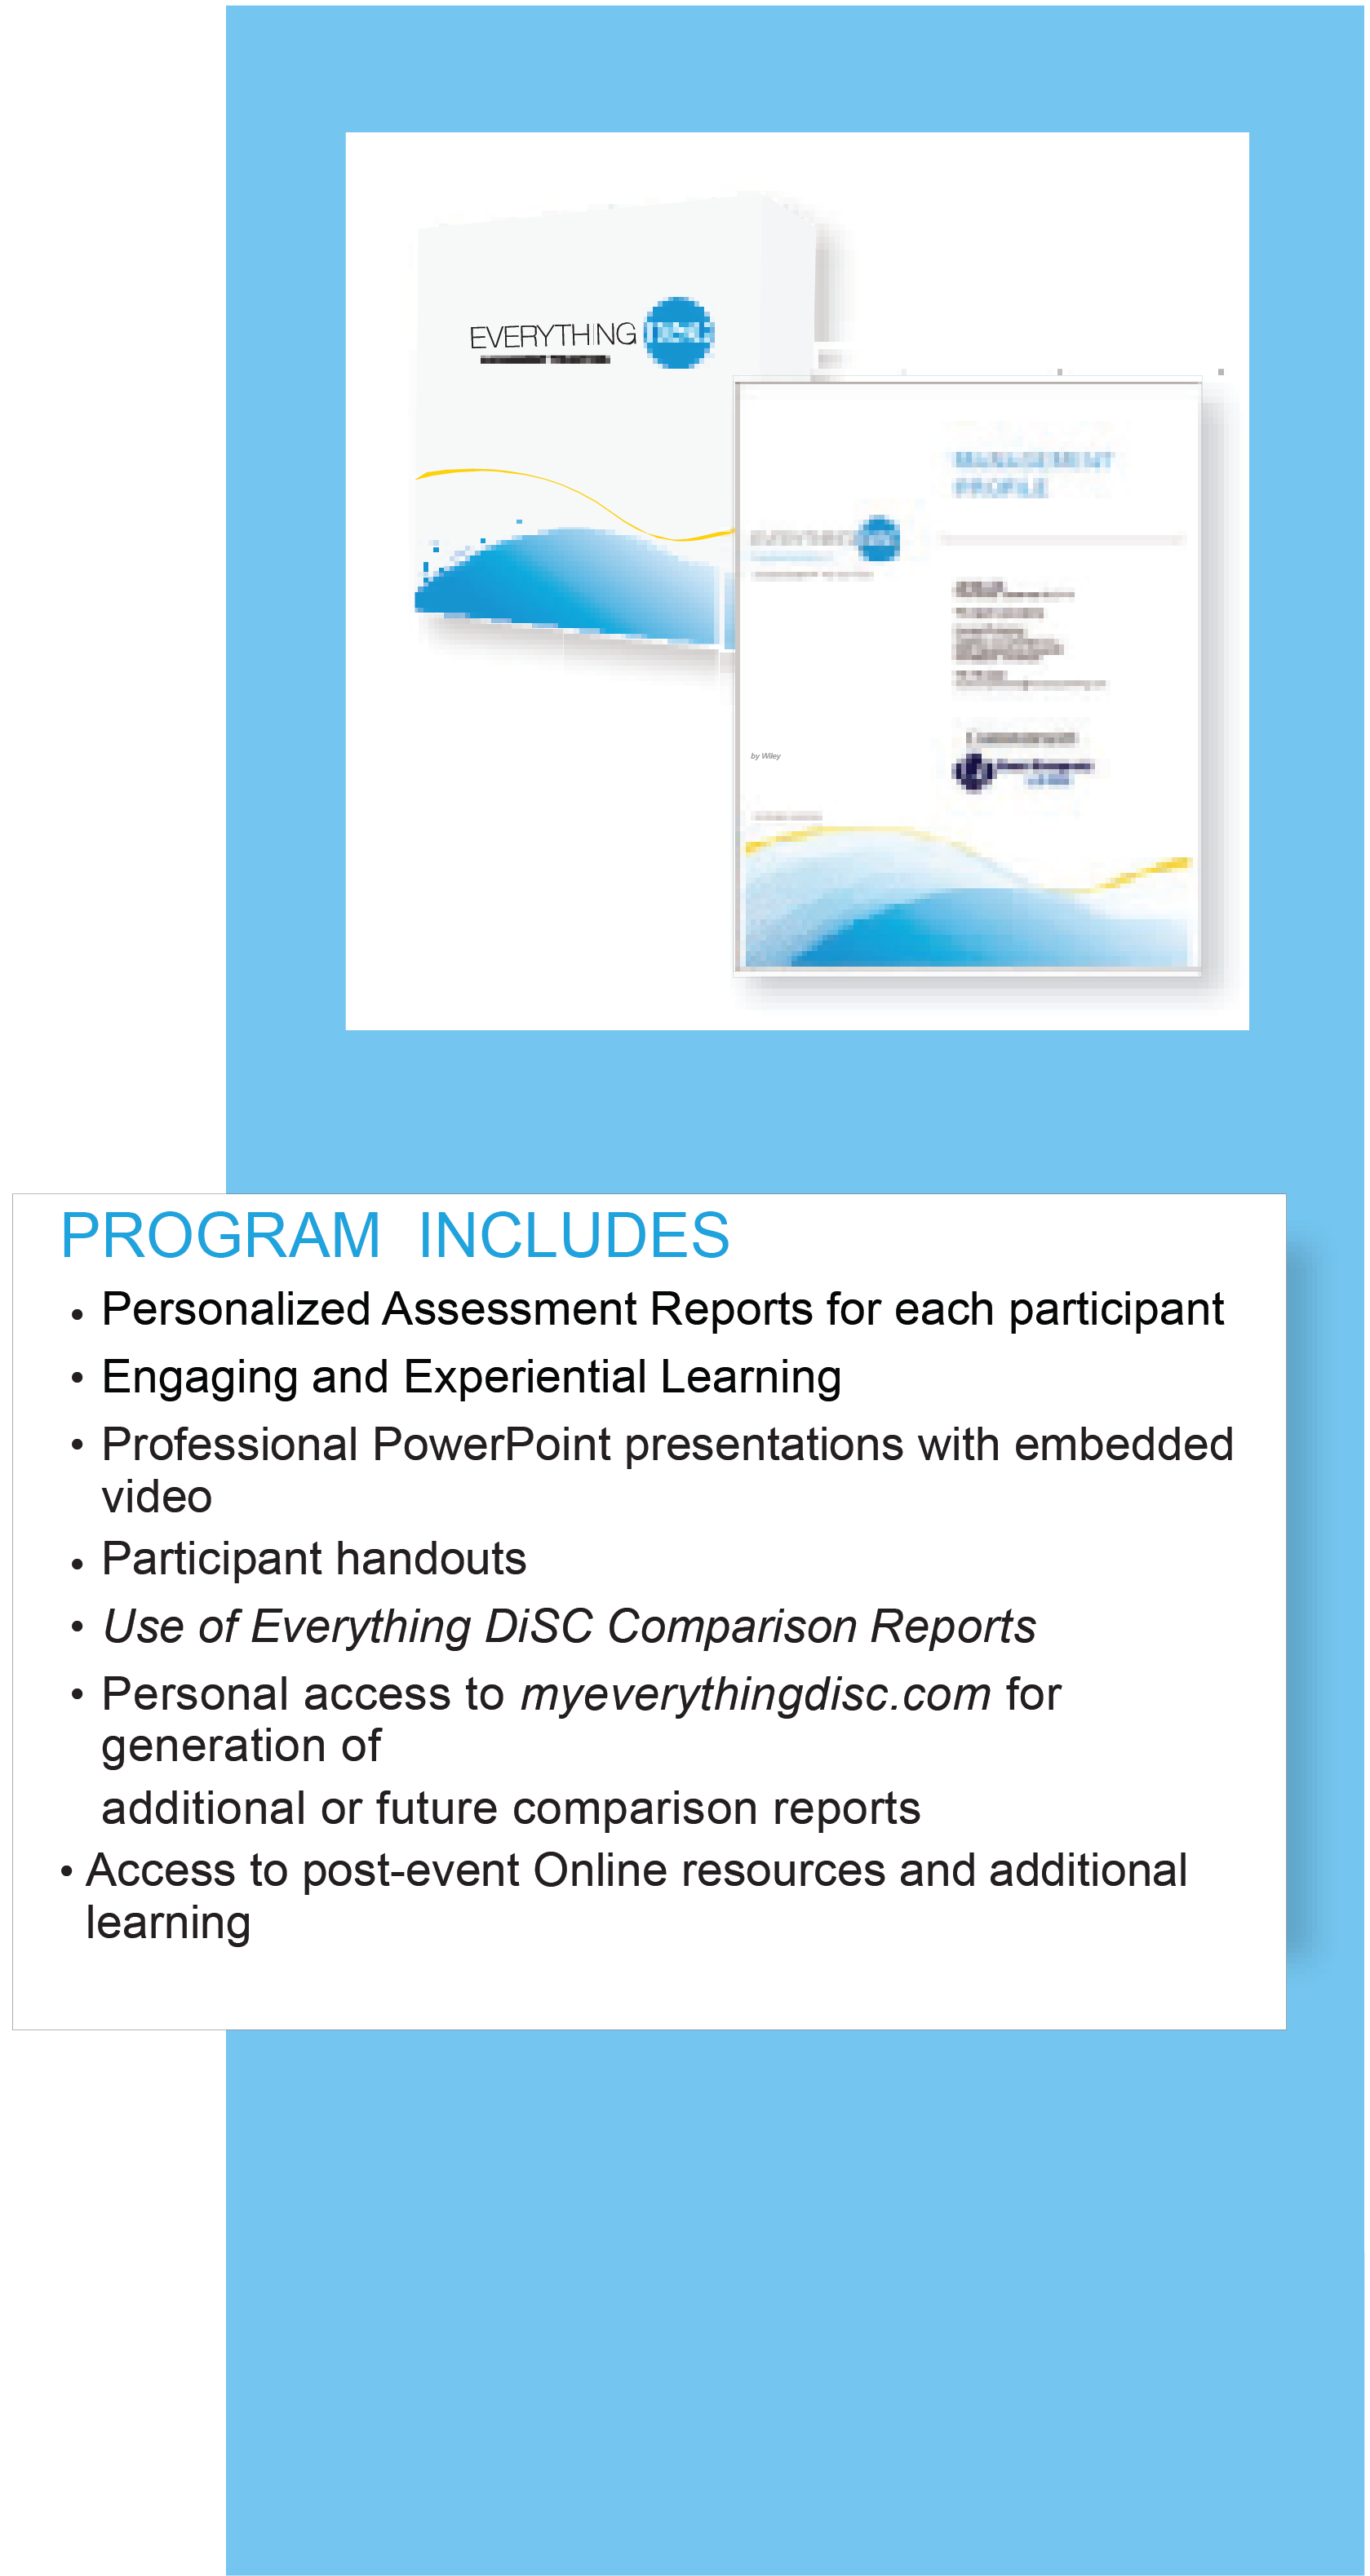 Program Features